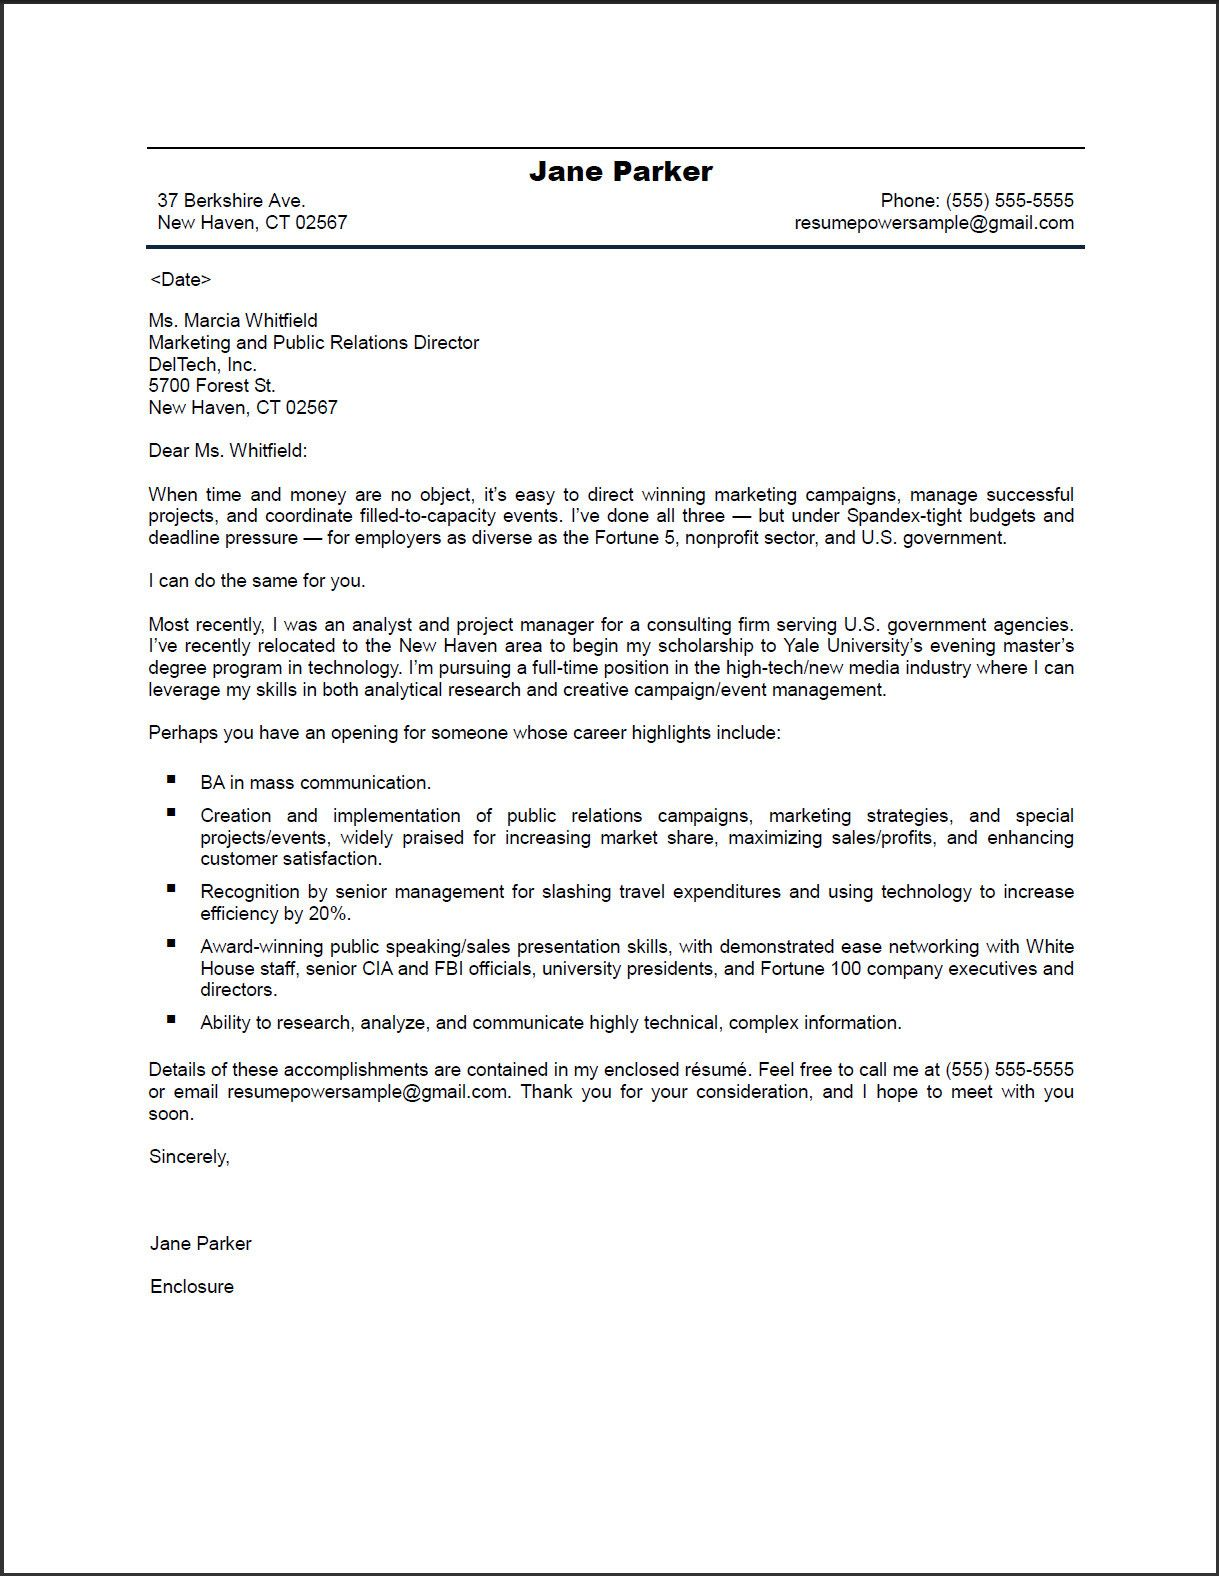 cover letter template word 2010